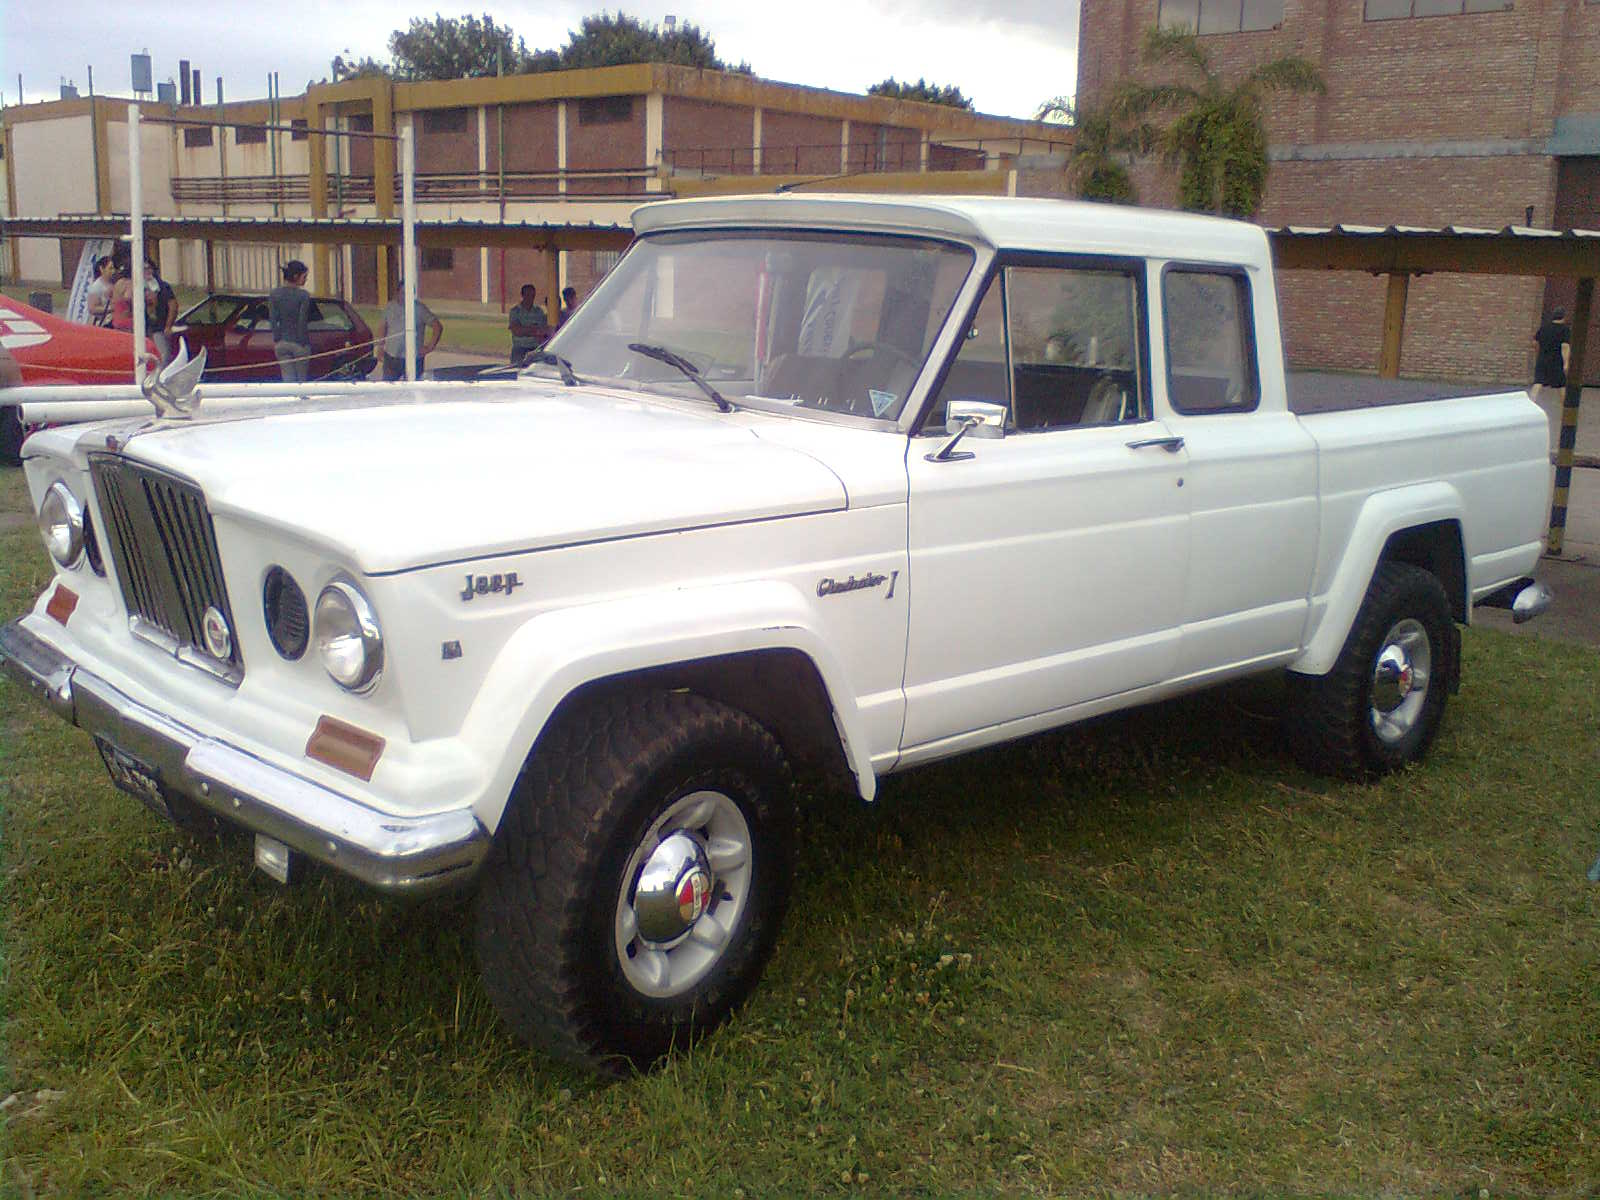 Jeep Wagoneer For Sale >> File:IKA Jeep Gladiator.jpg - Wikimedia Commons